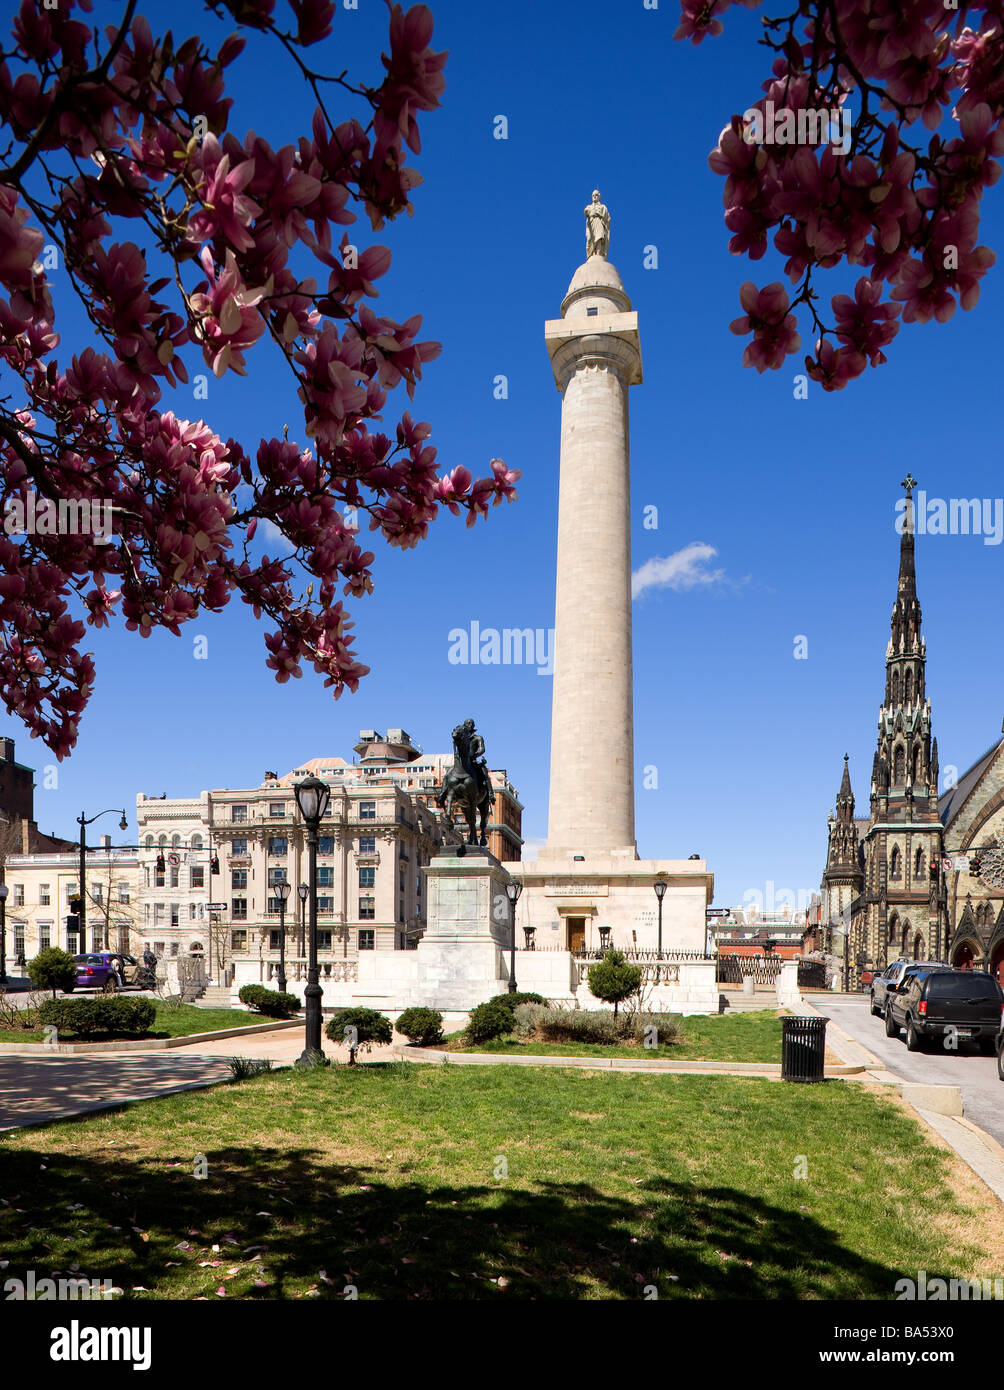 The George Washington Monument in Baltimore, Maryland - Stock Image